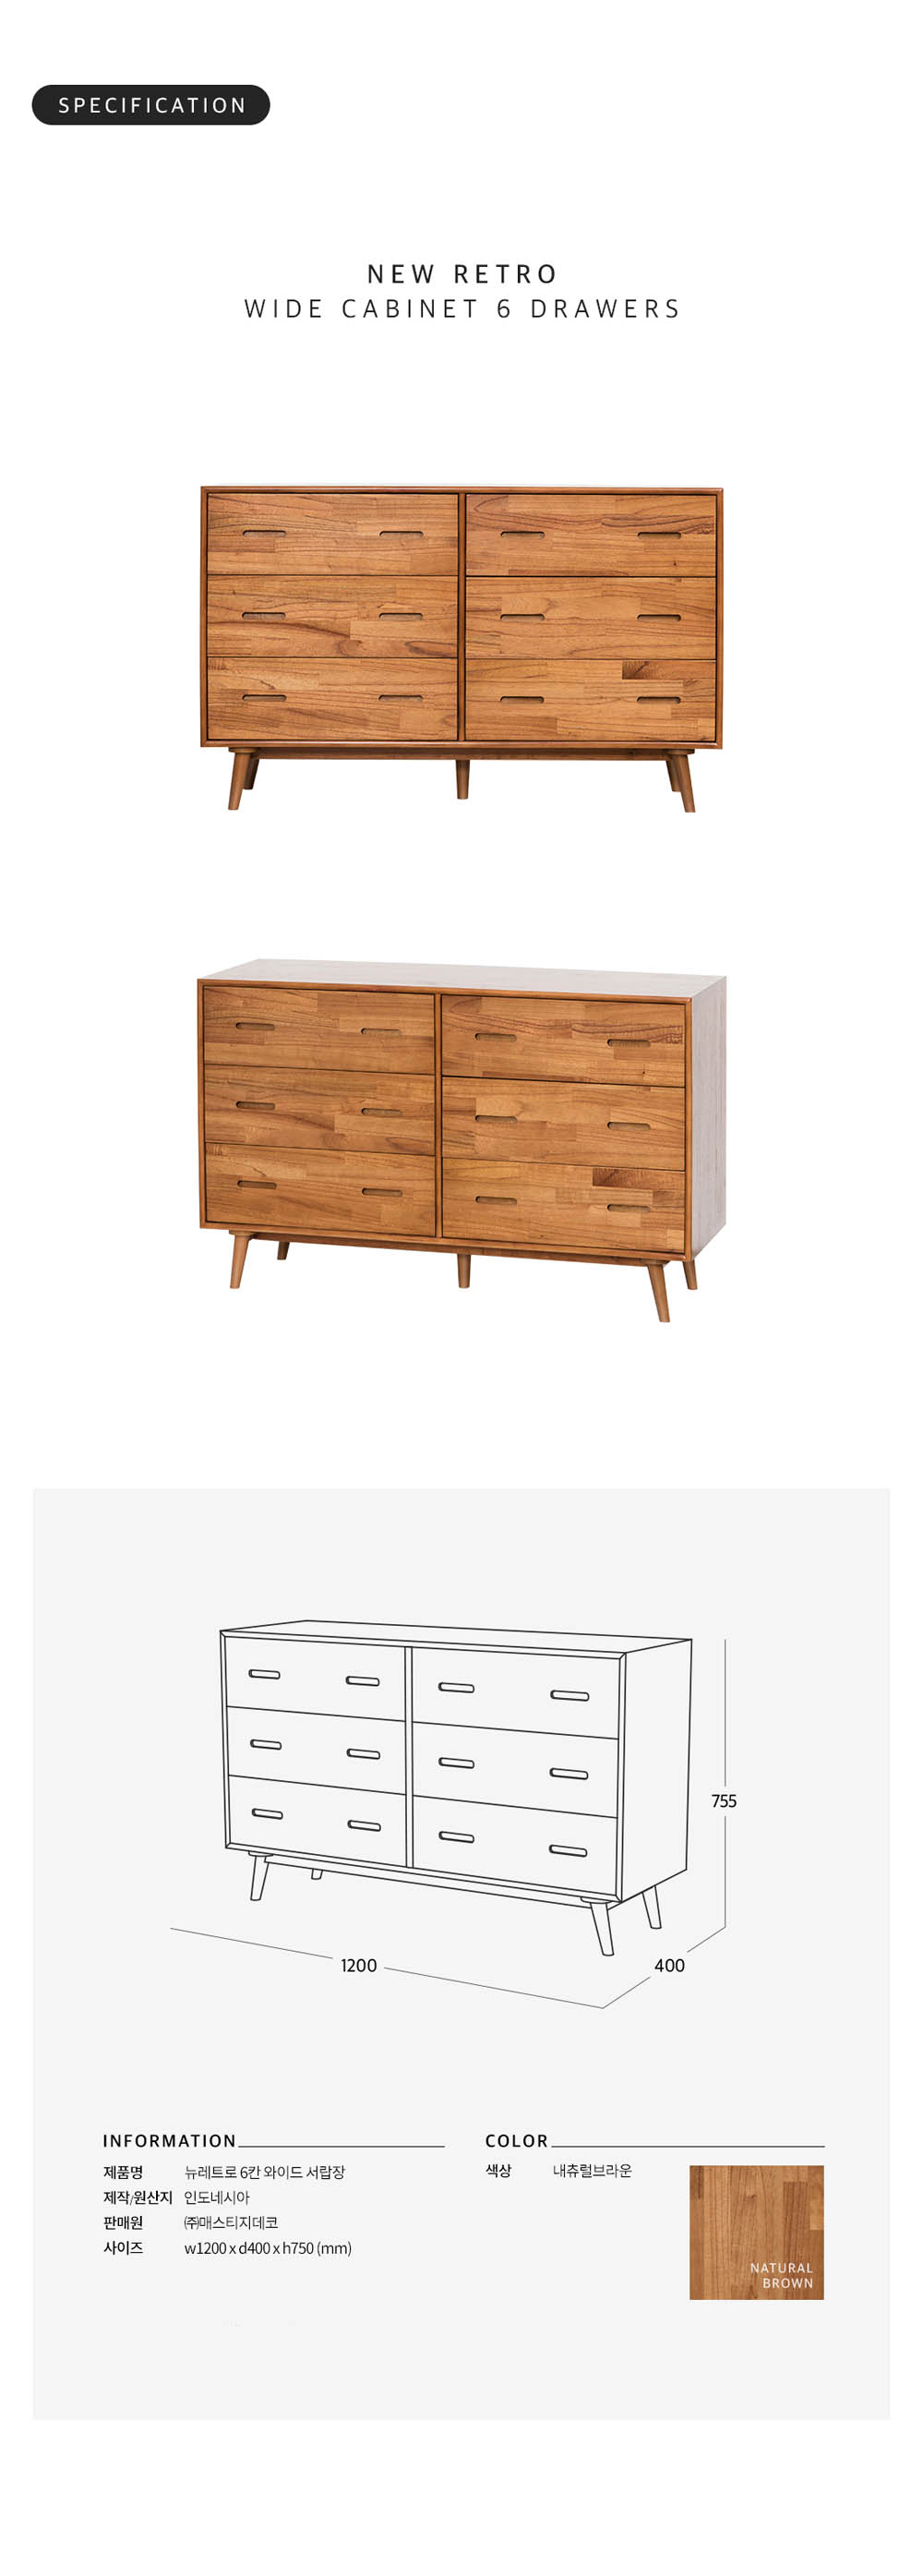 New_Retro_6_Drawers_Wide_Storage_Chest_Cabinet_Specification_1_Furniture_Singapore_by_born_in_colour